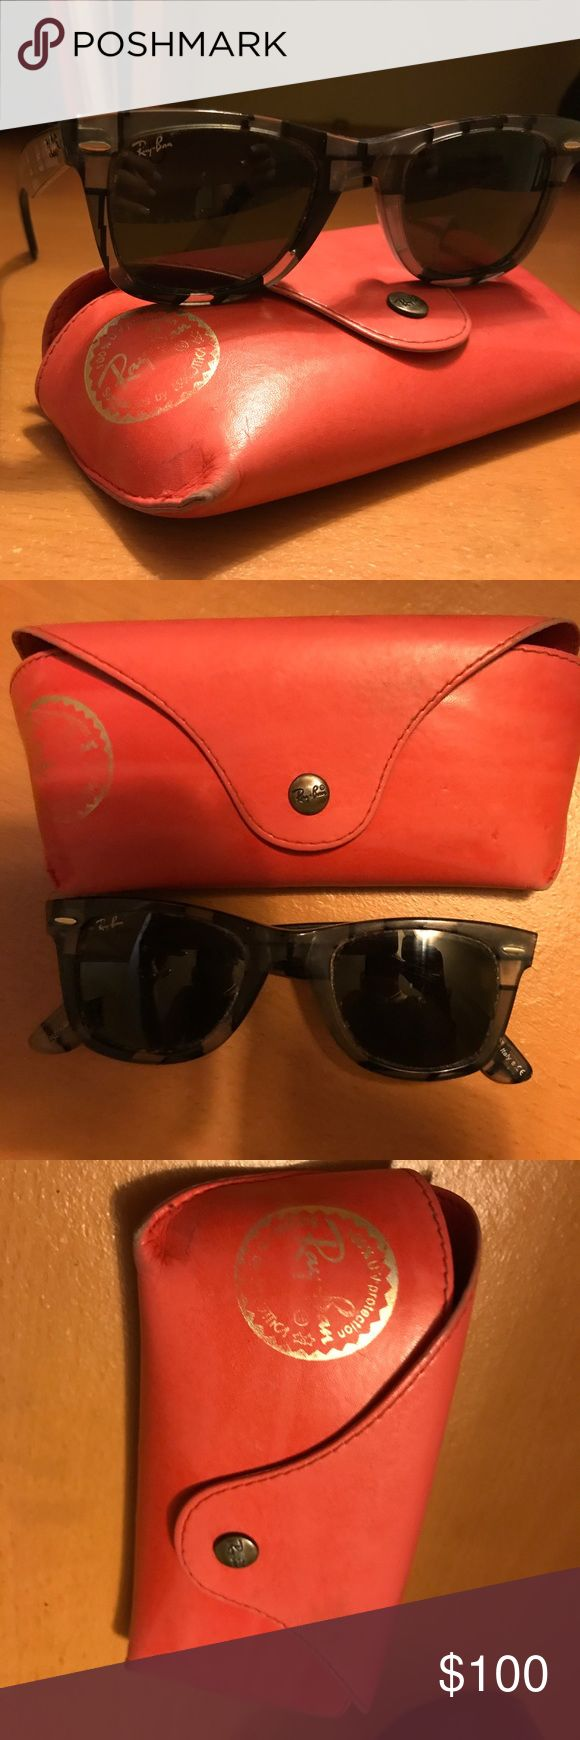 RAY BAN WAYFARERS Case included, 100% UV Protection, Super Cute!!! Ray-Ban Accessories Sunglasses